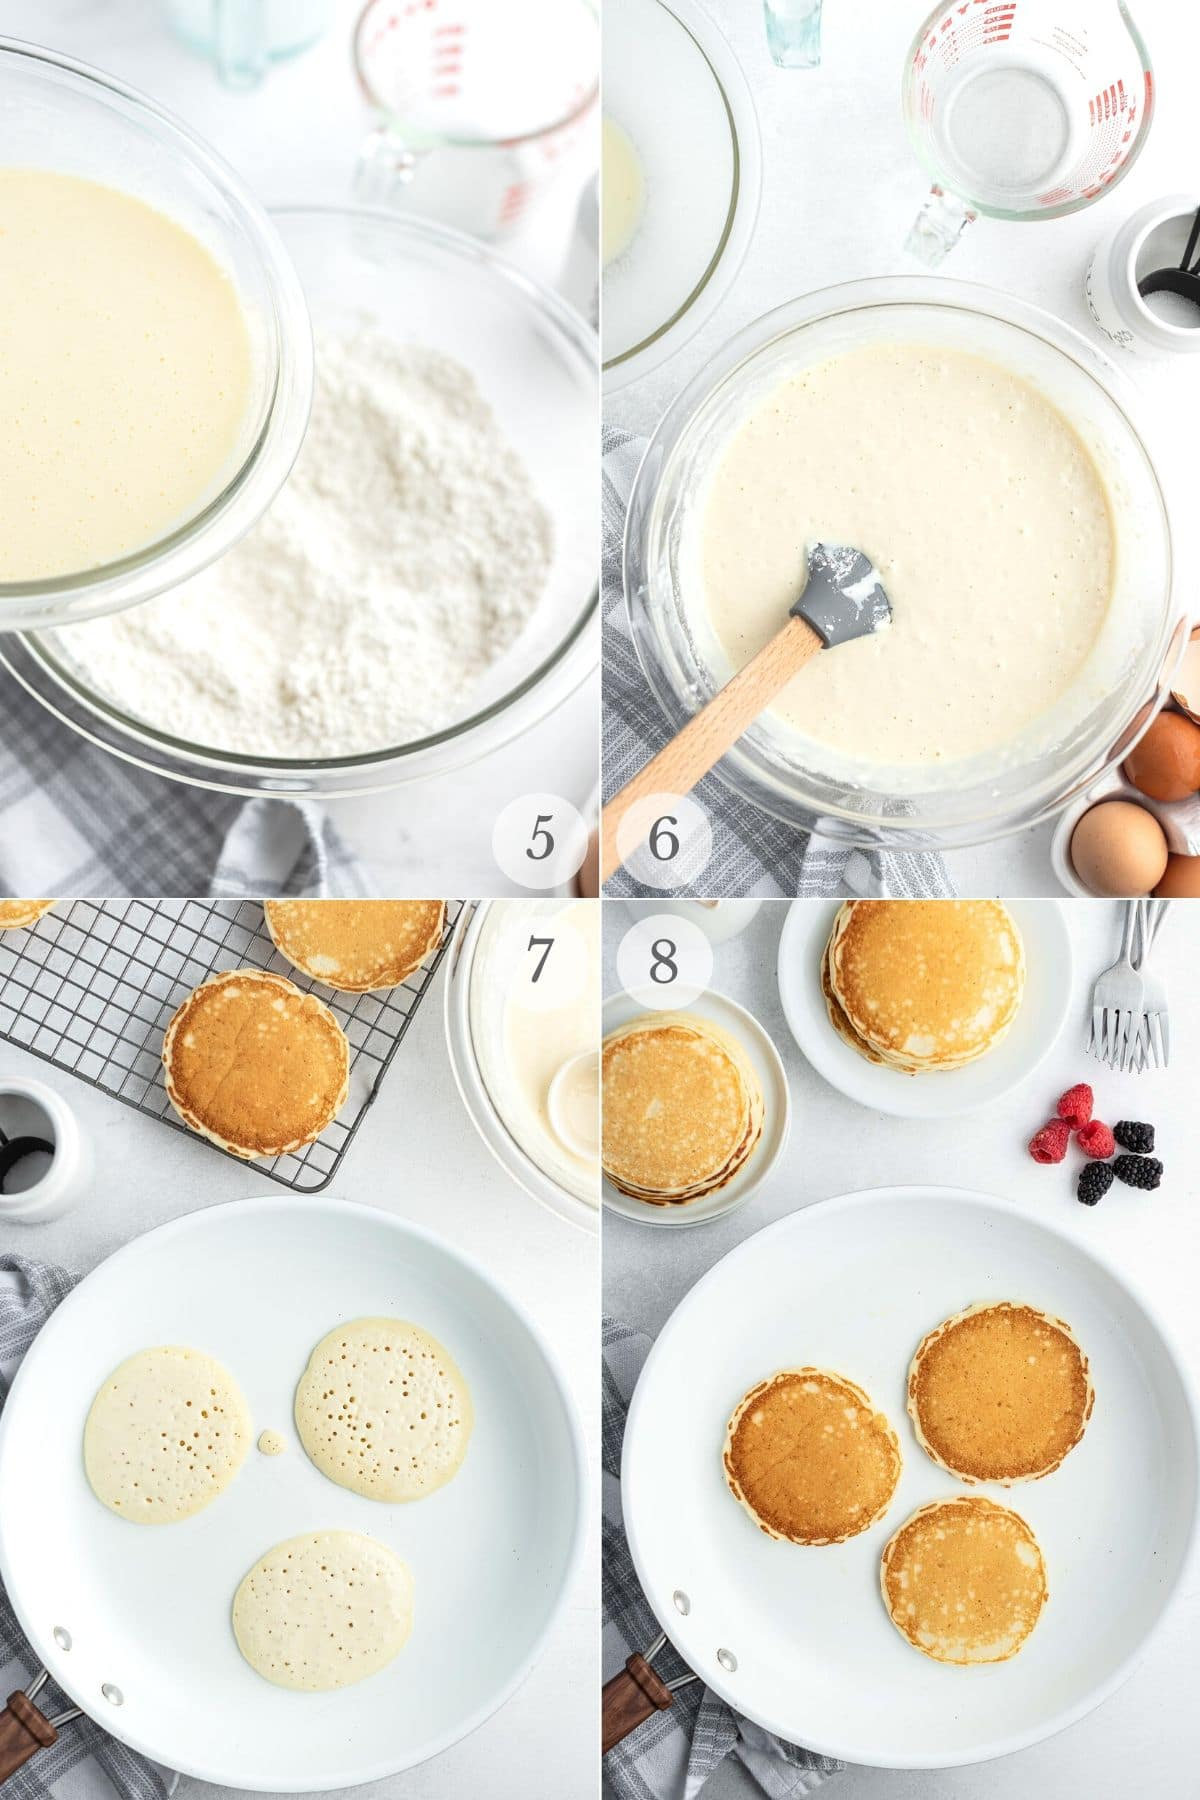 buttermilk pancakes recipe steps 5-8 making batter and cooking pancakes